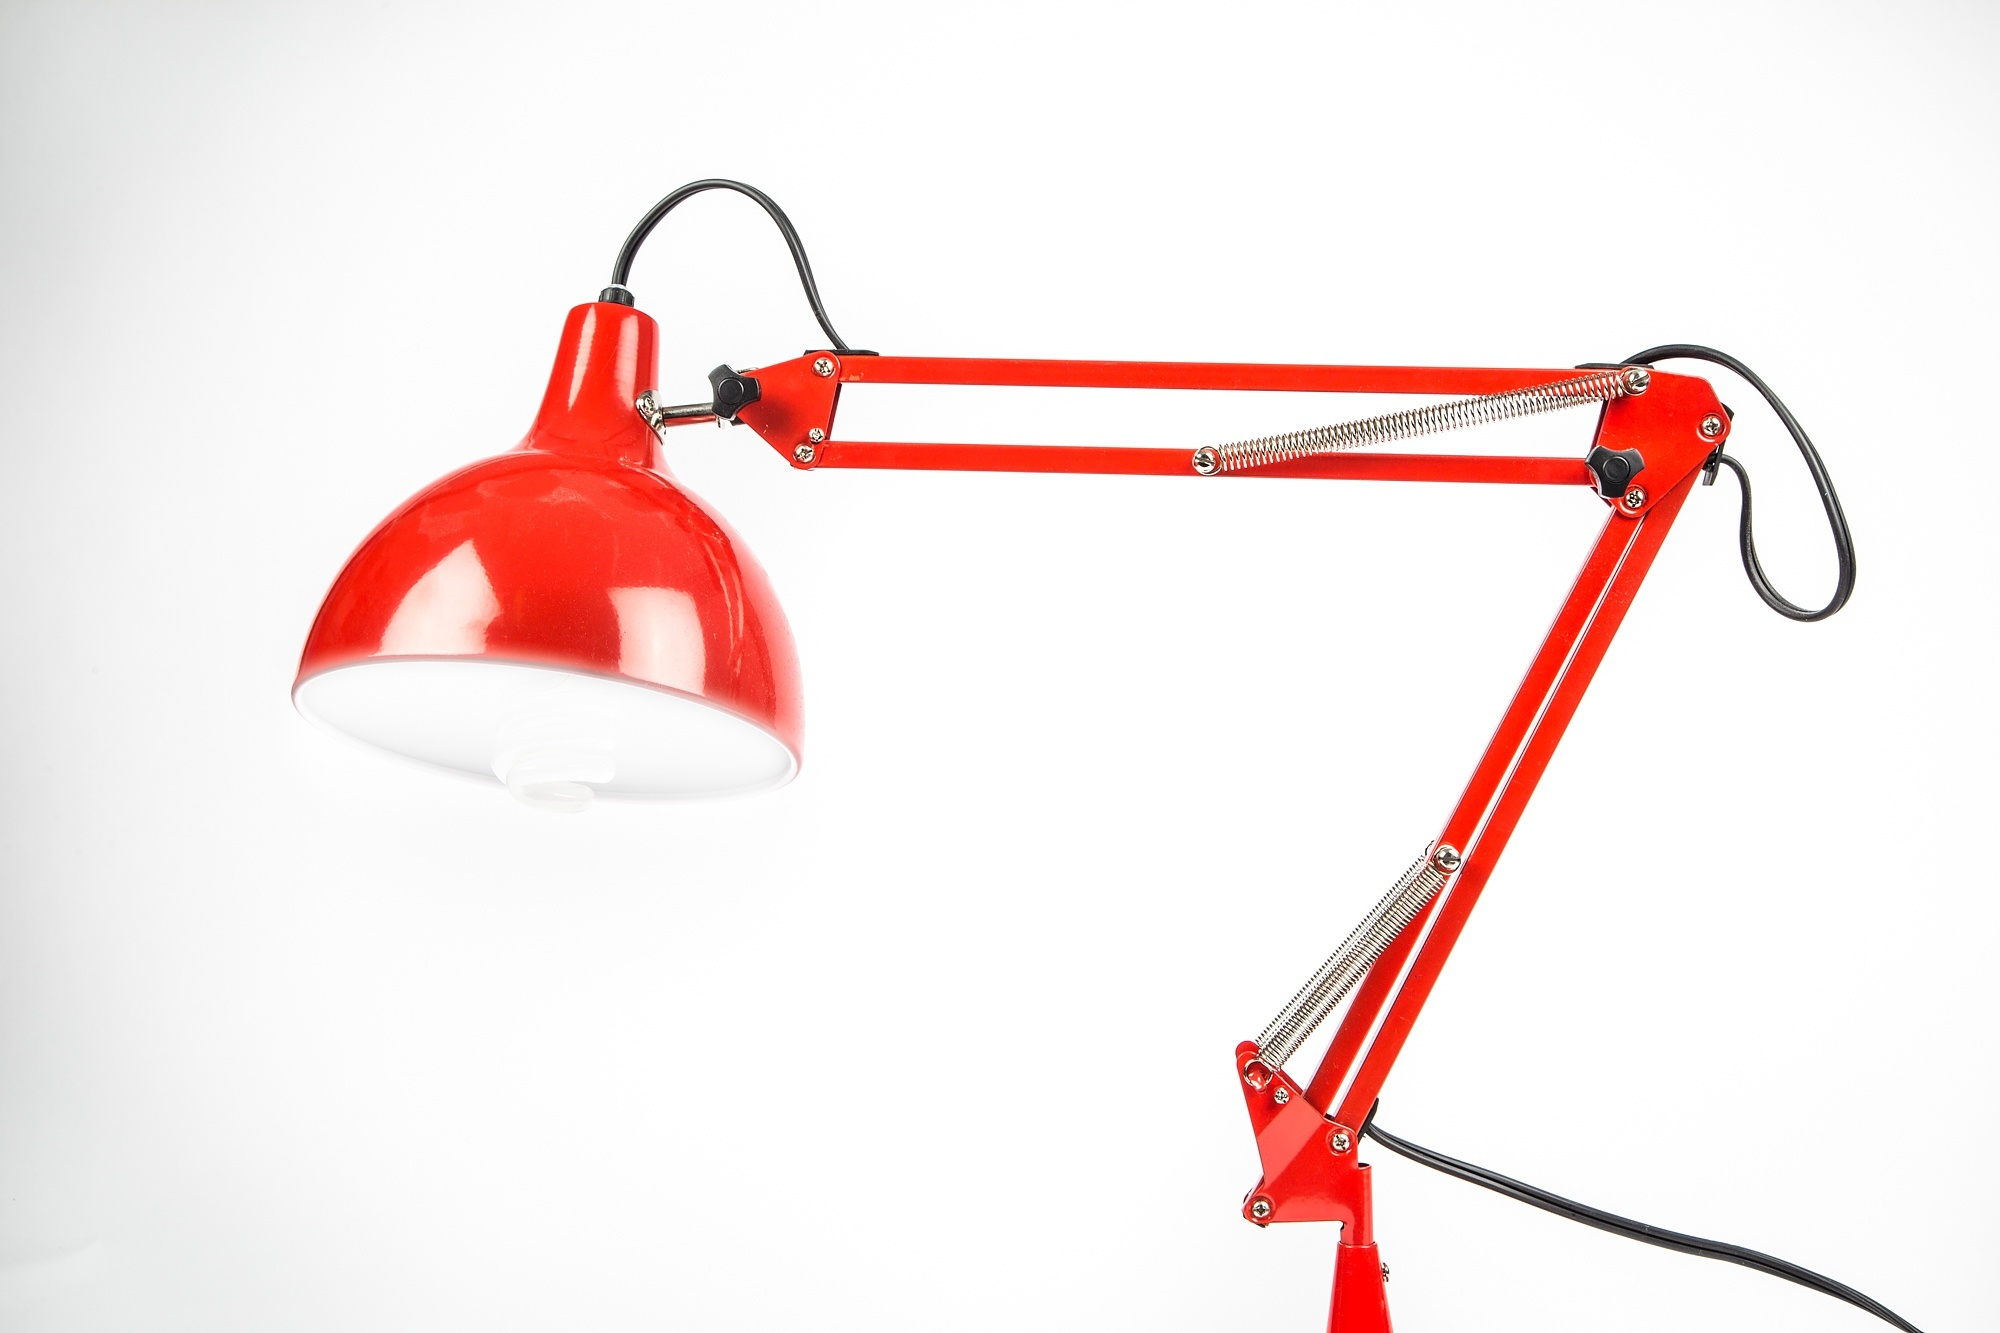 Red 4 bar linkage arm lamp with light shining downwards.